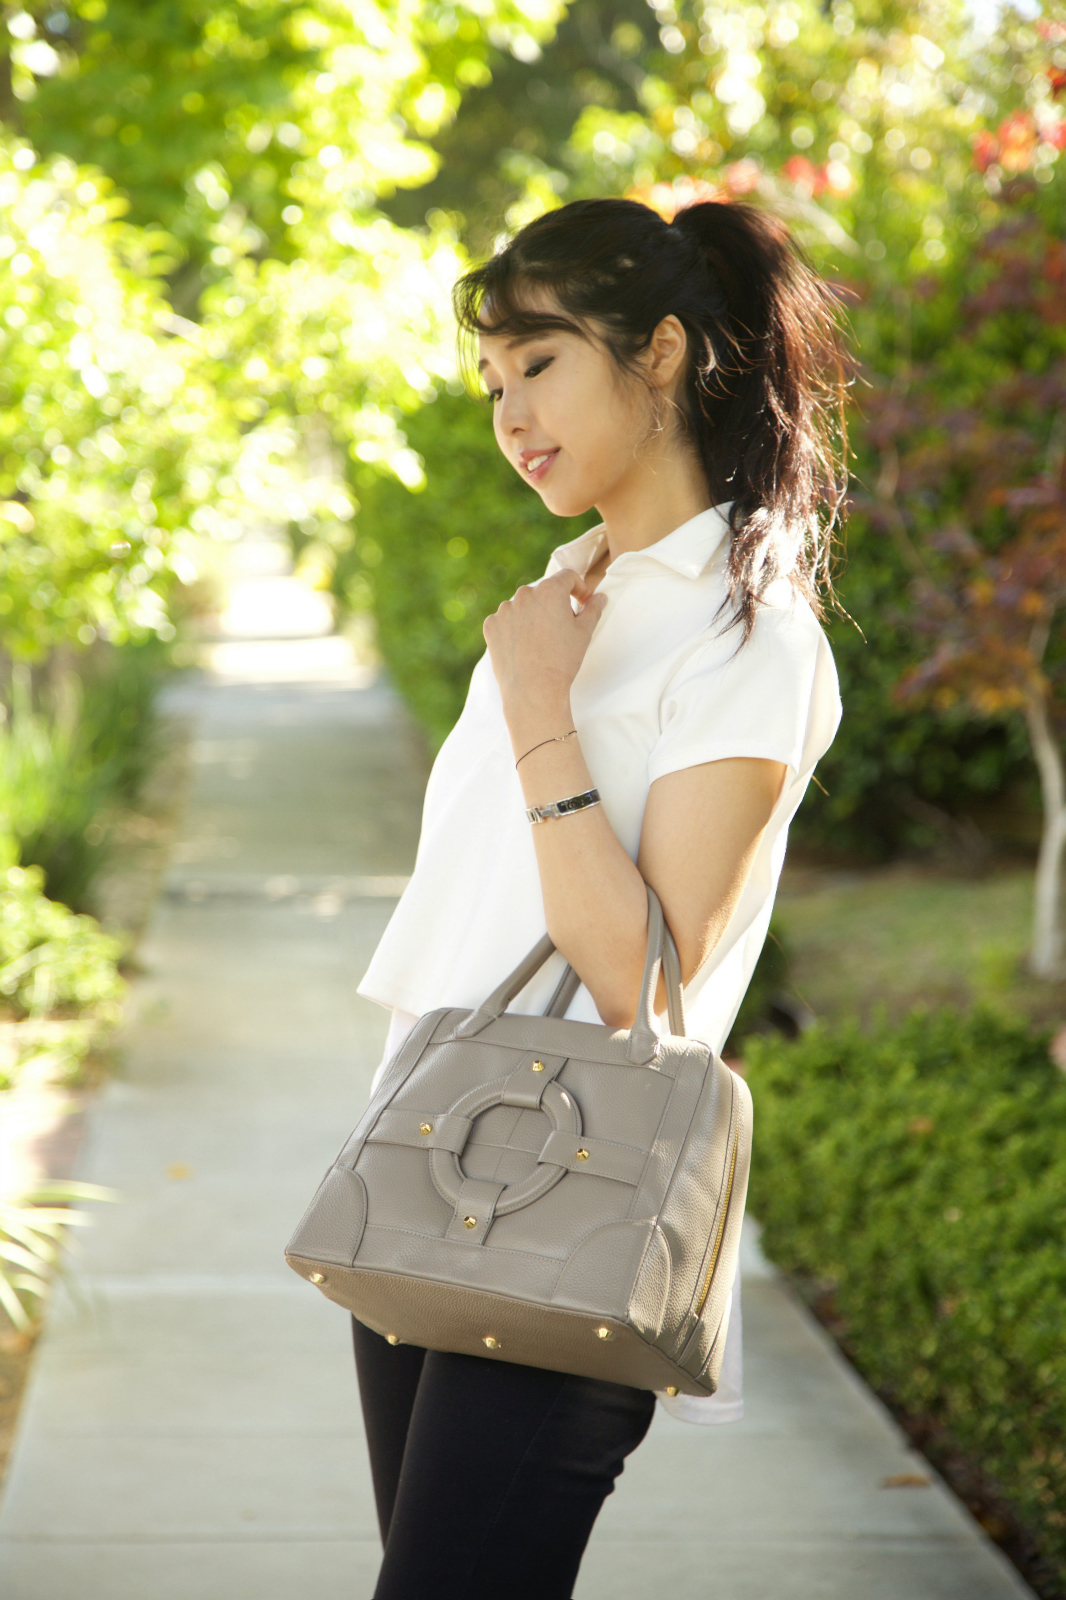 ally gong homanz bag korean style idol kpop celebrity fashion inspiration ponytail cute pretty japanese ootd fblogger leather bag los angeles palo alto bay area fashion blogger chinese model miss asia america iu idol